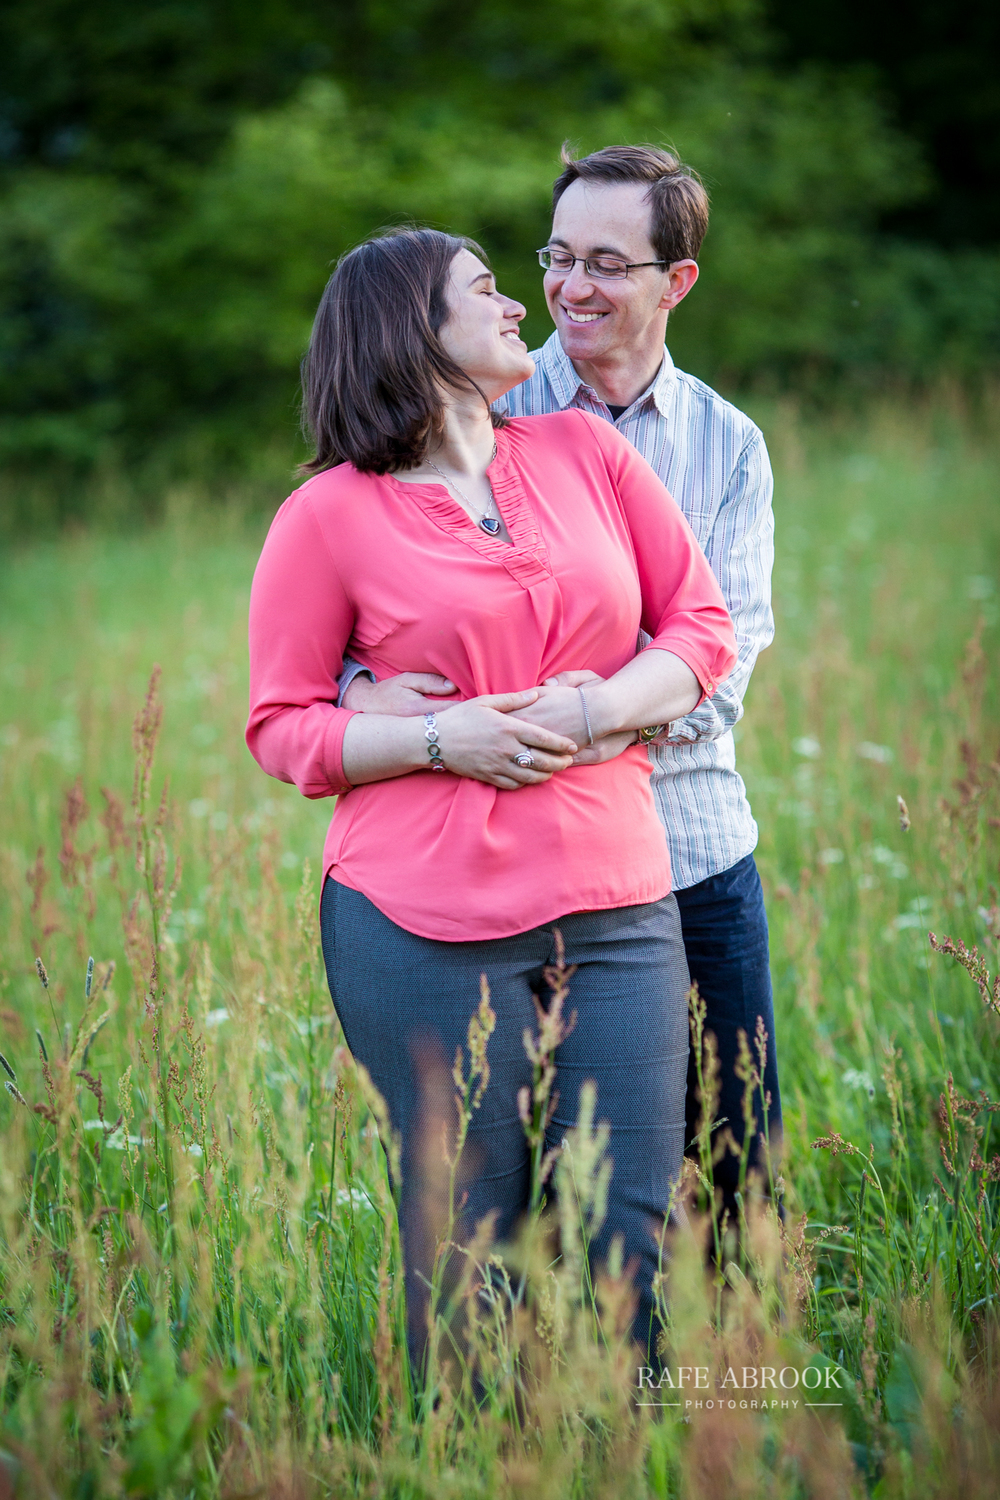 david & hannah engagement shoot hampstead heath london-2017.jpg